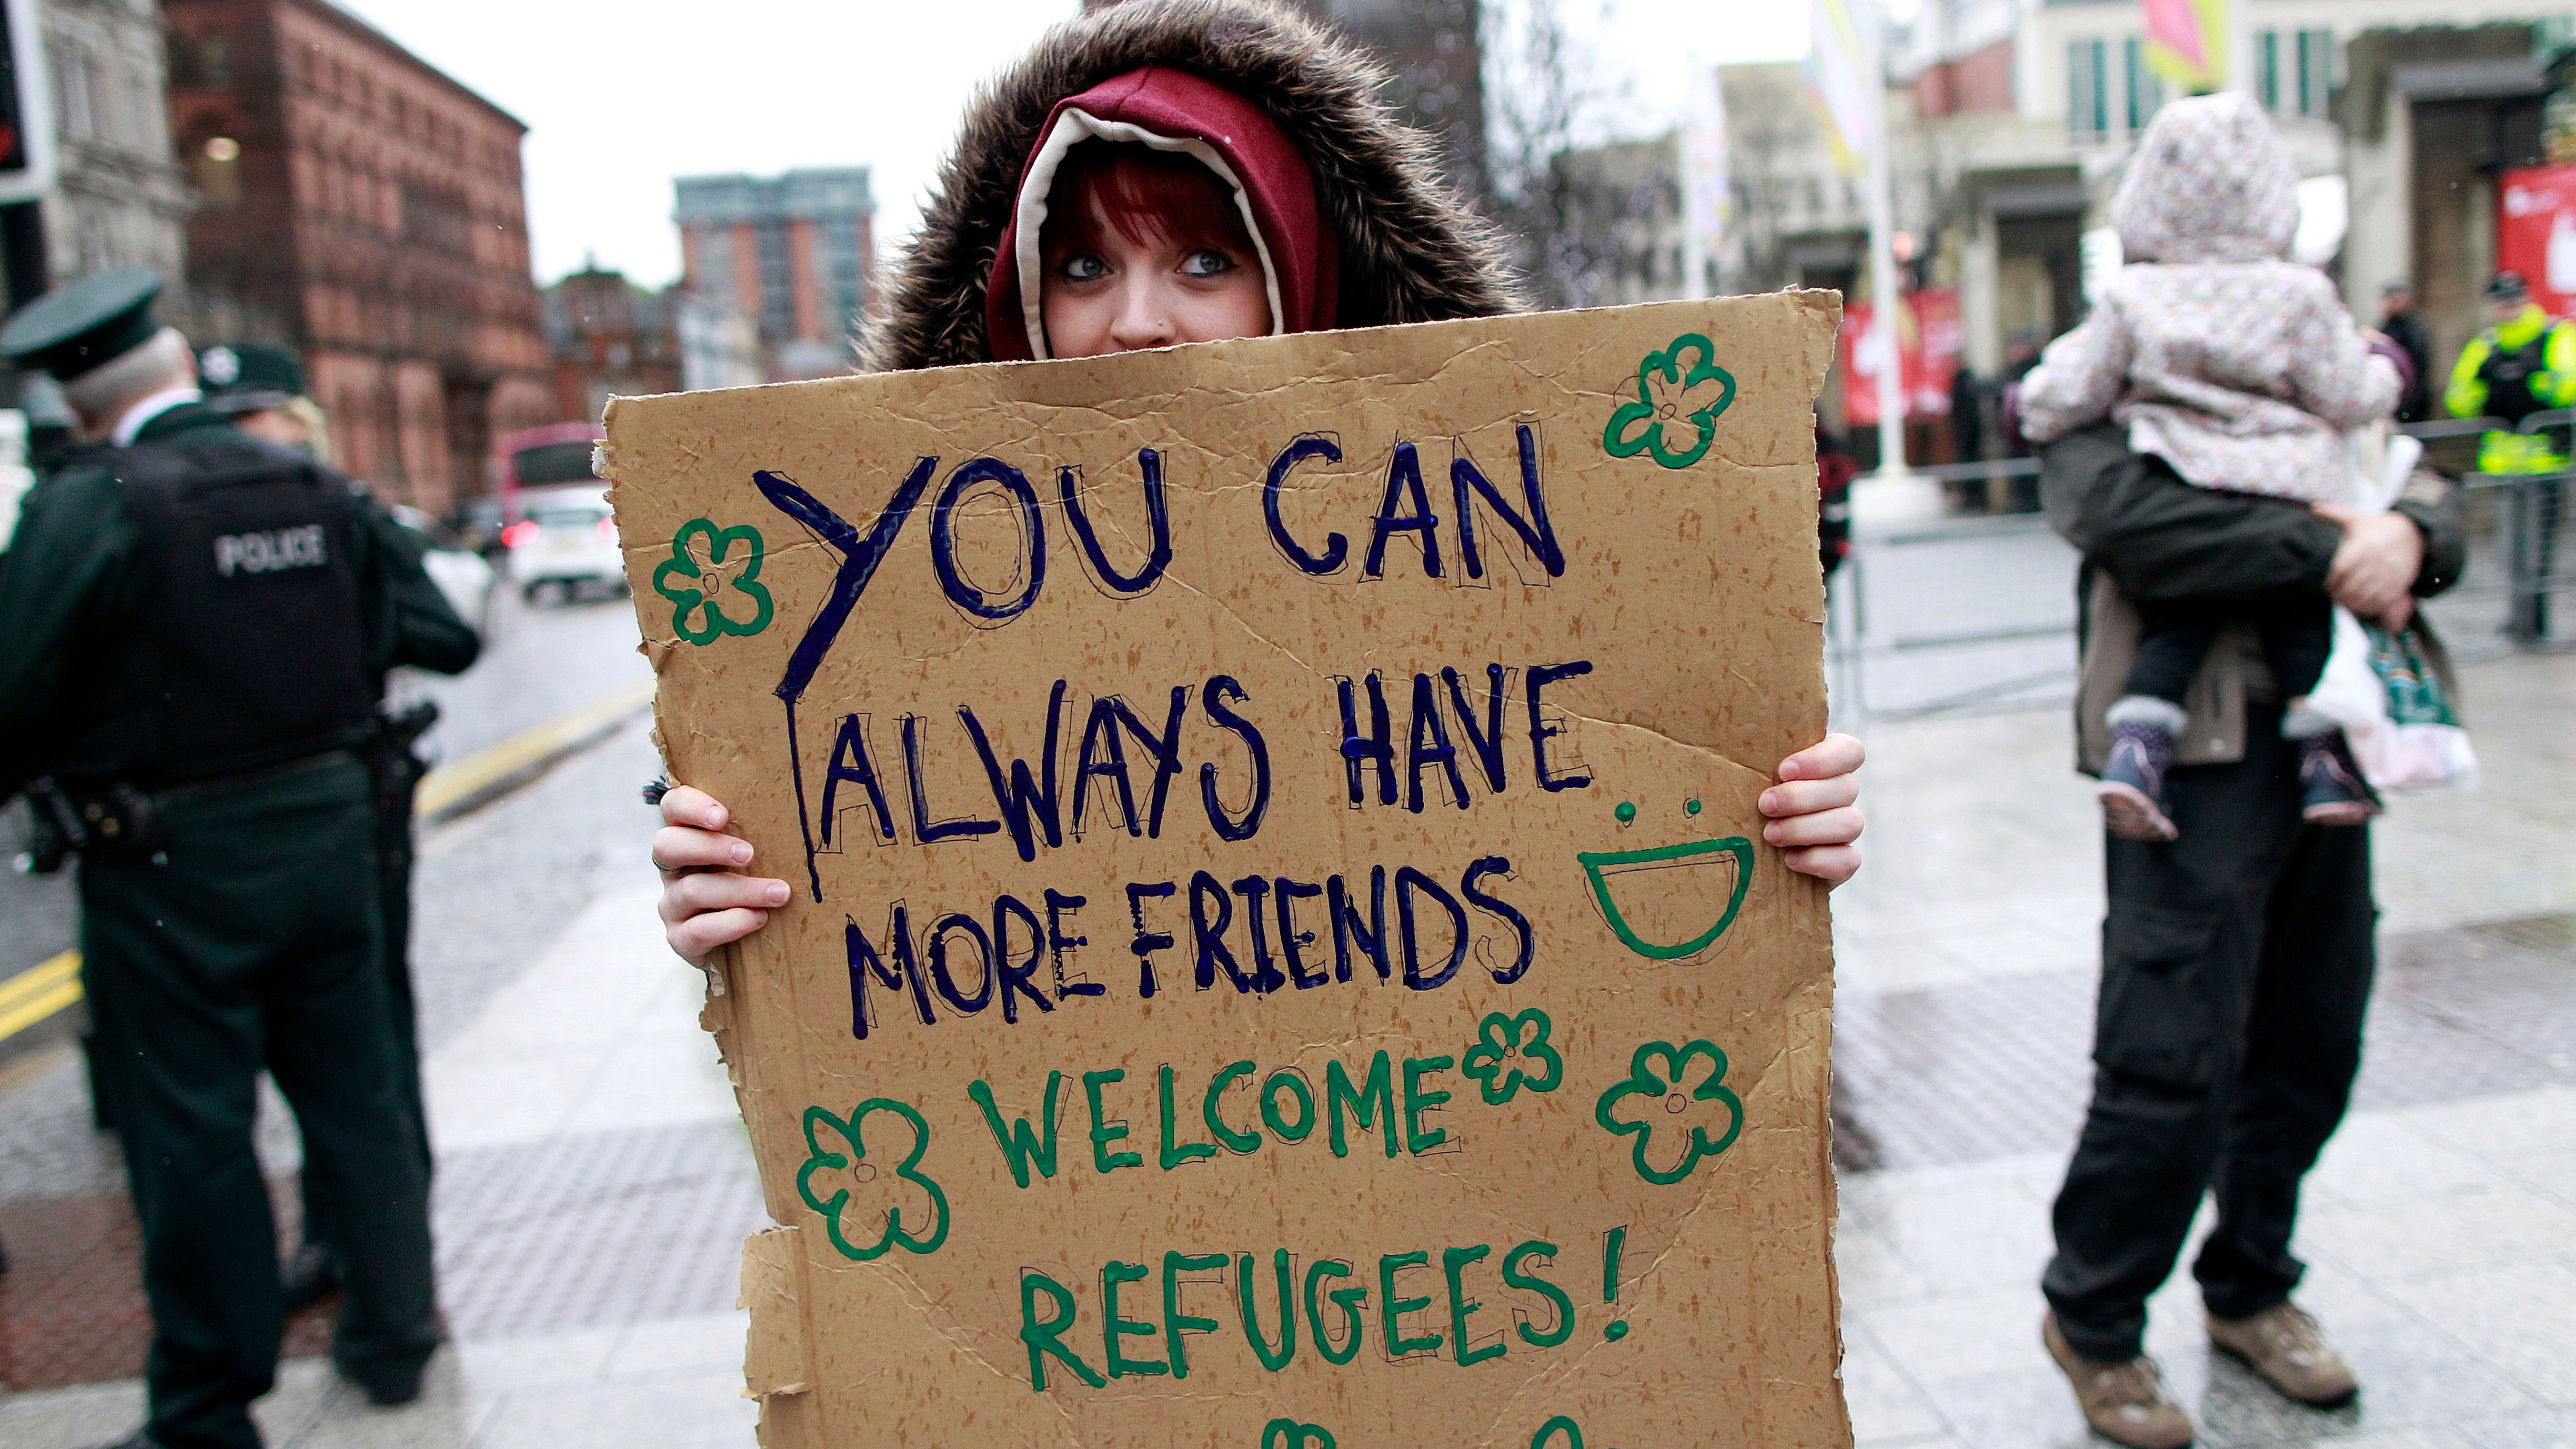 A  person joins the counter demonstration as they protest at the arrival of Anti-refugee rally outside Belfast city hall, Northern Ireland, Saturday, Dec. 5, 2015.  The anti-refugee protest was made up of mainly Loyalist supporters and was organized ahead of the arrival on December 12th of Syrian refugees to Northern Ireland.